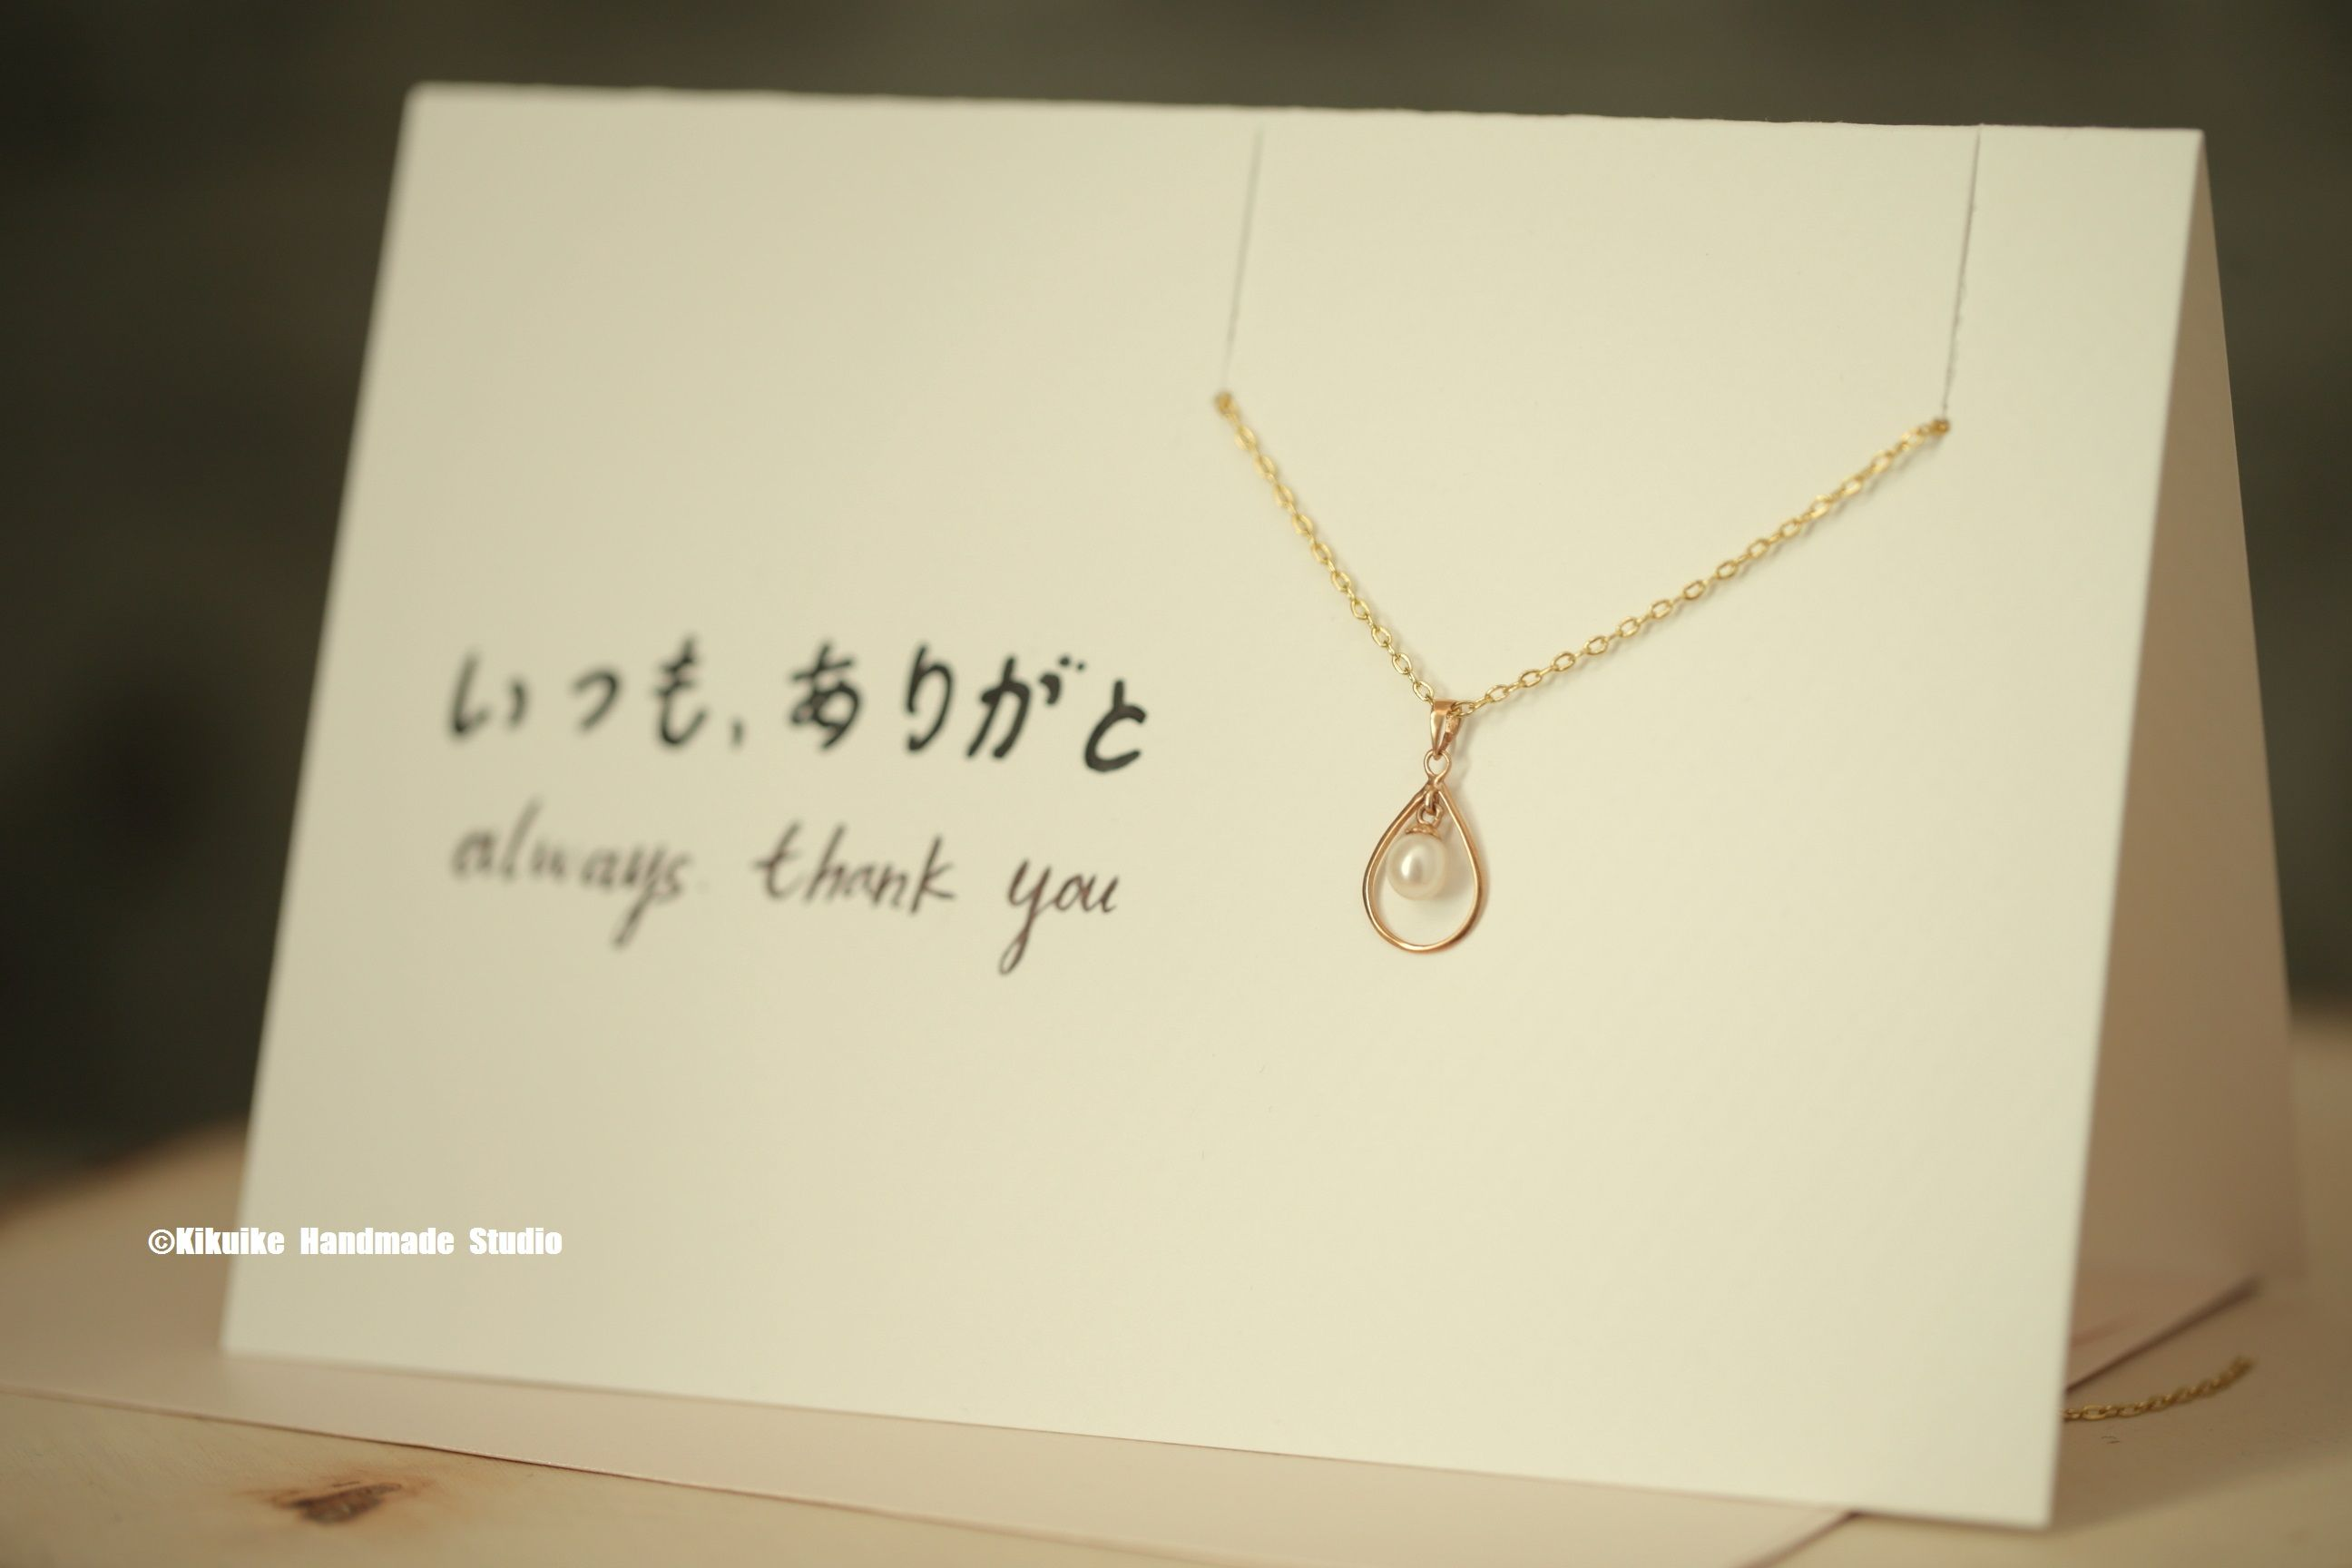 Necklace cardgift for hergift for friendgirlfriend giftmiss you gift for hergift for friendgirlfriend giftmiss you cardsfriendship cards birthday cardlove cardthank you cardsblank cardjewelry card greetingcards bookmarktalkfo Image collections